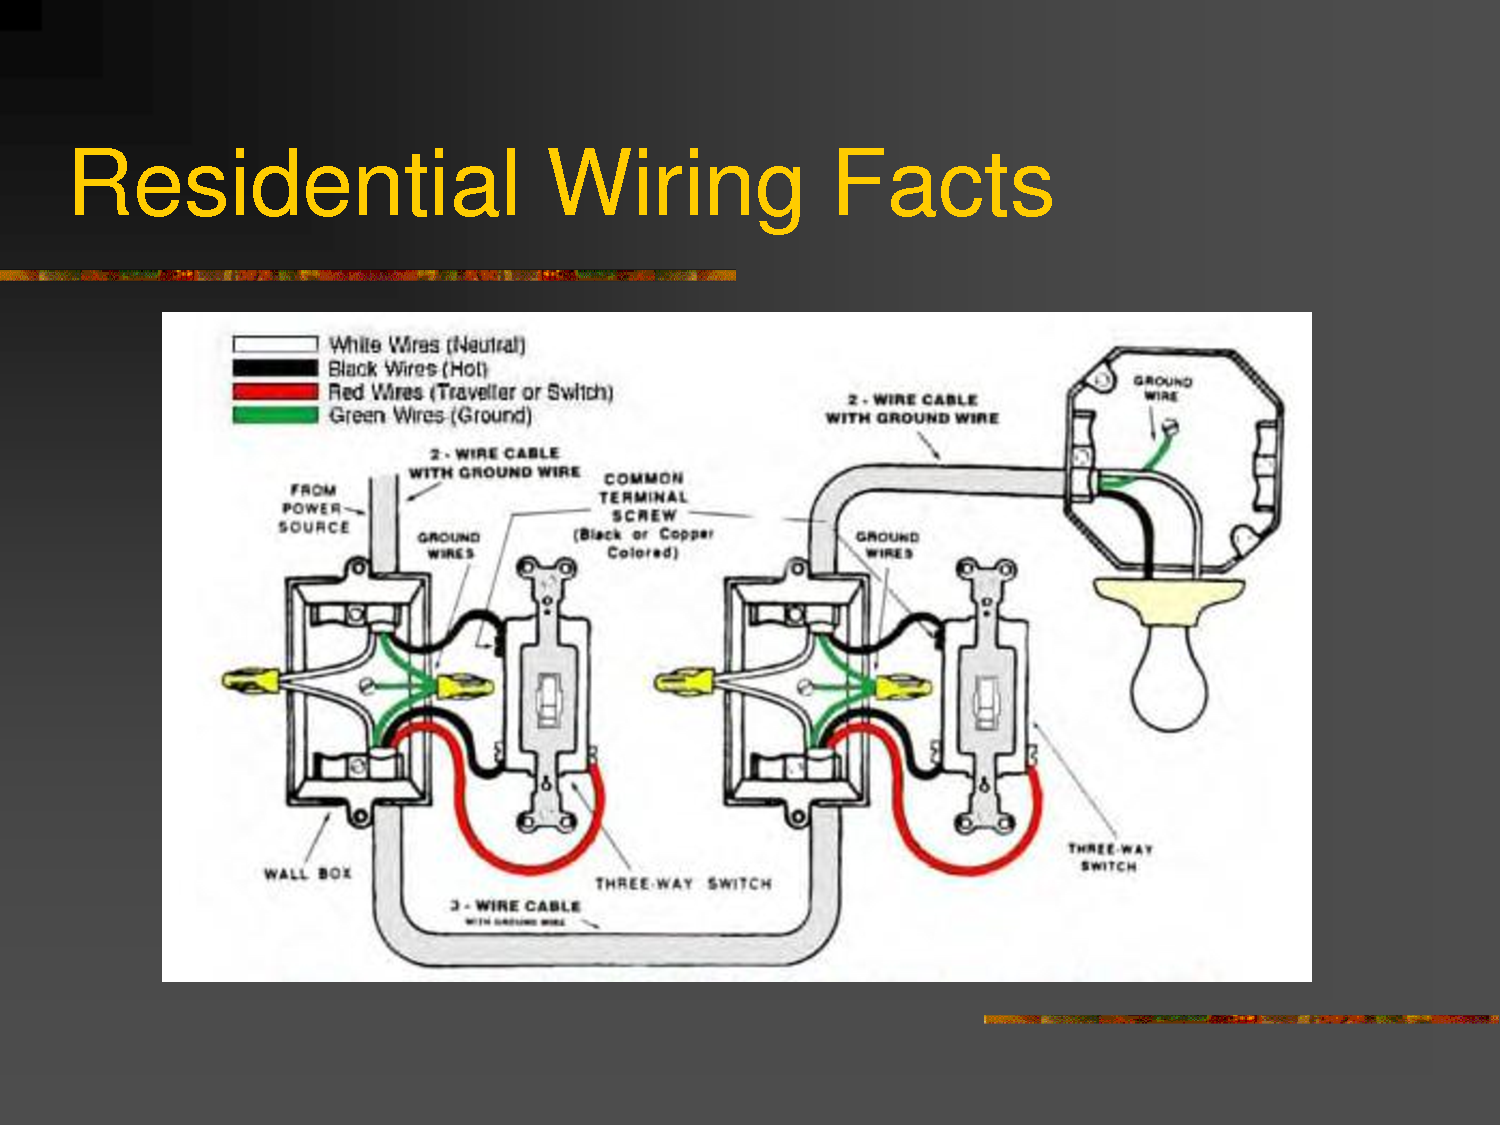 Wiring Diagrams House Lights Brake Light Diagram Ford F150 4 Best Images Of Residential